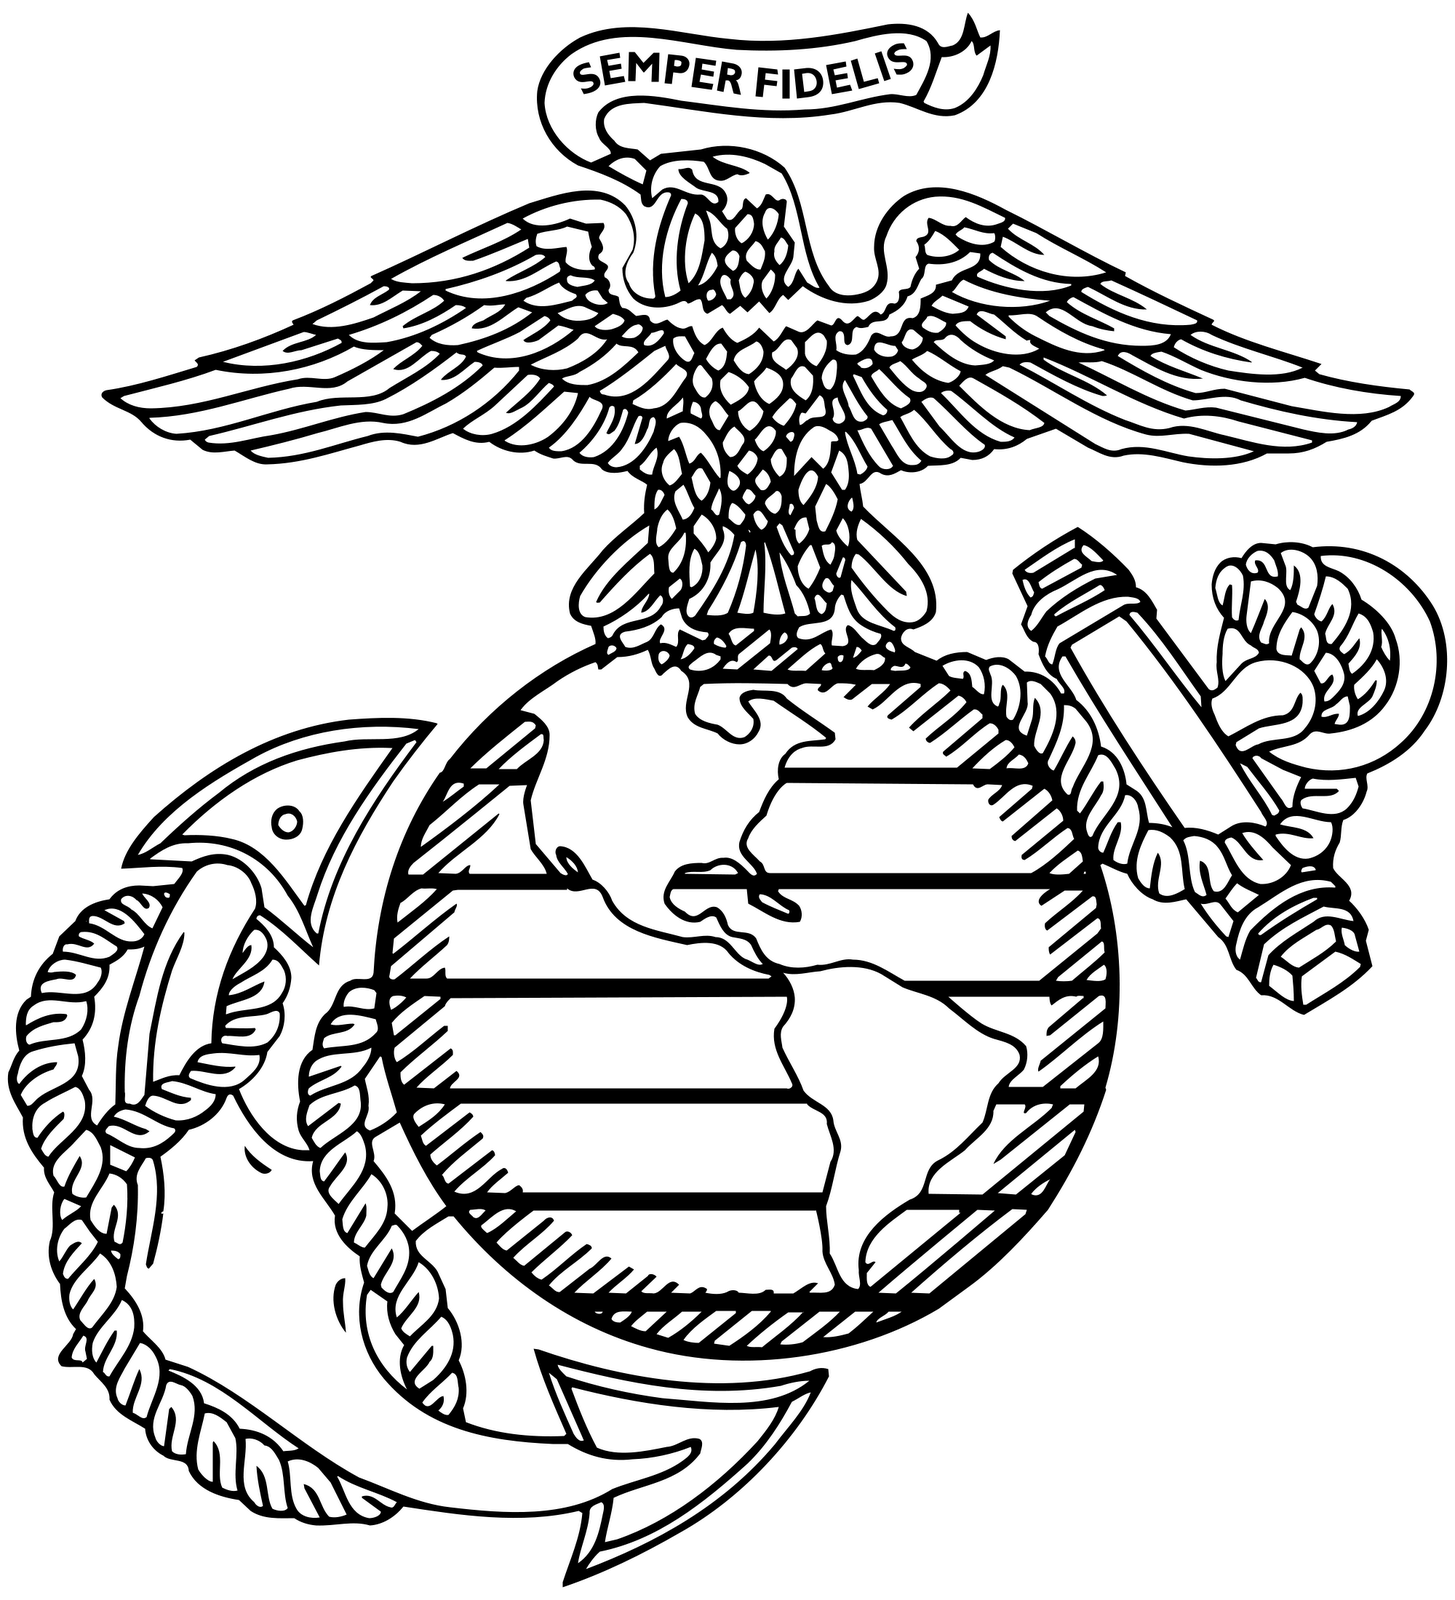 Dynamite image with regard to printable marine corps emblem